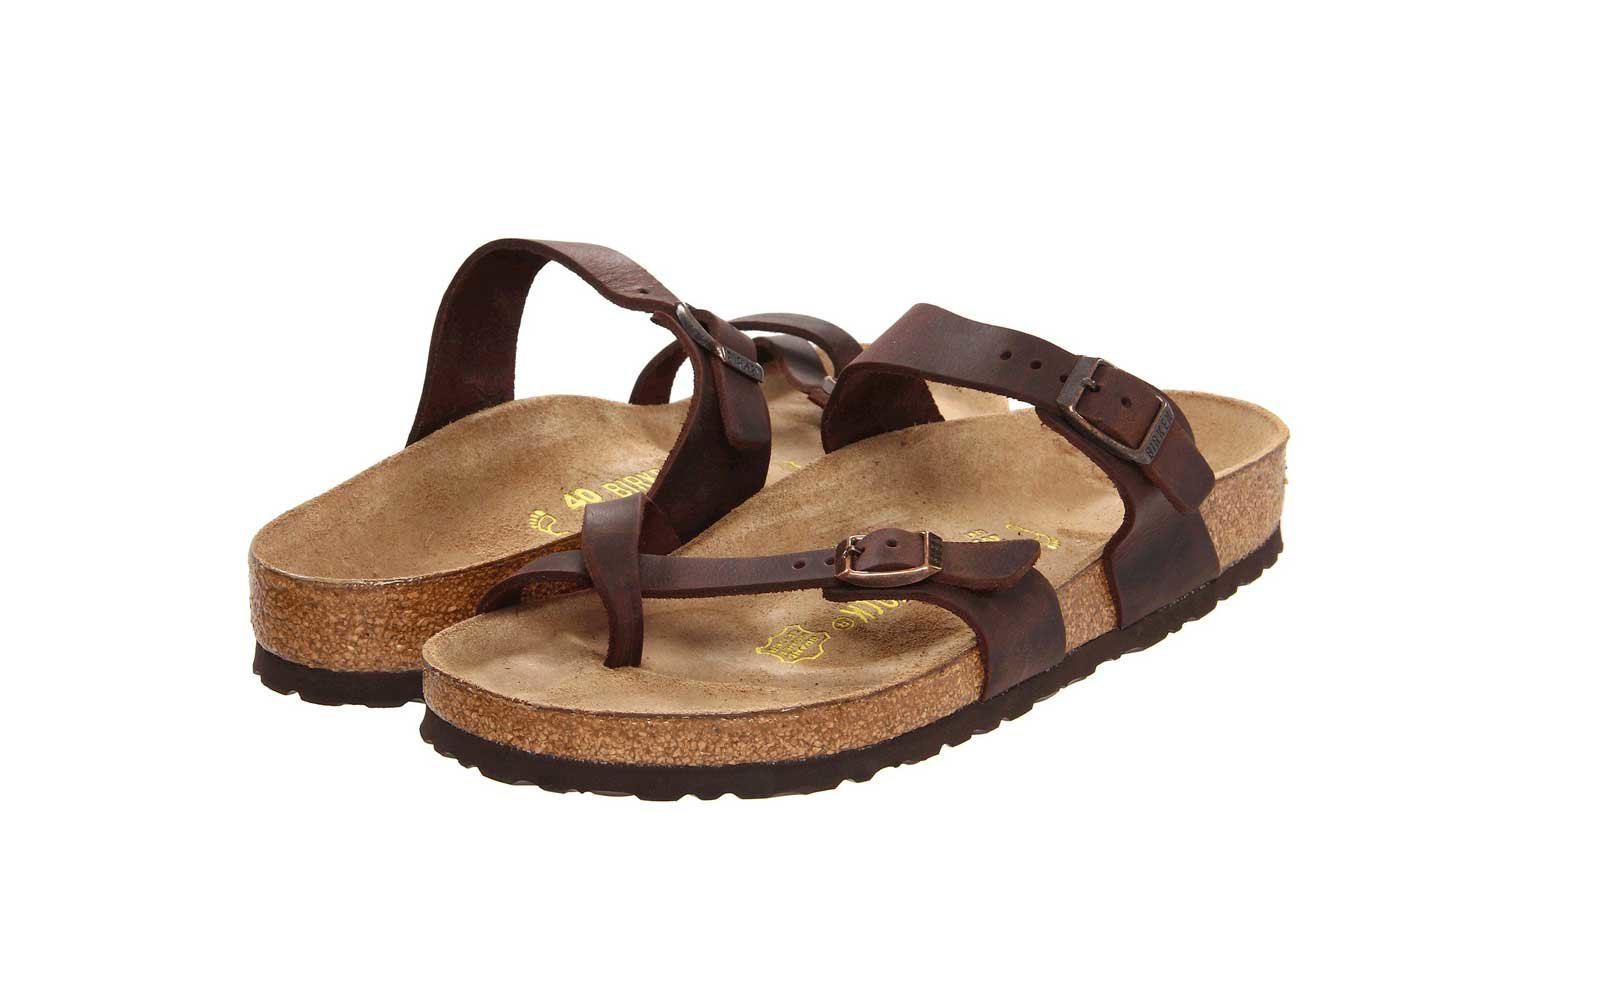 dabd93be8a0e92 The Most Comfortable Walking Sandals for Women